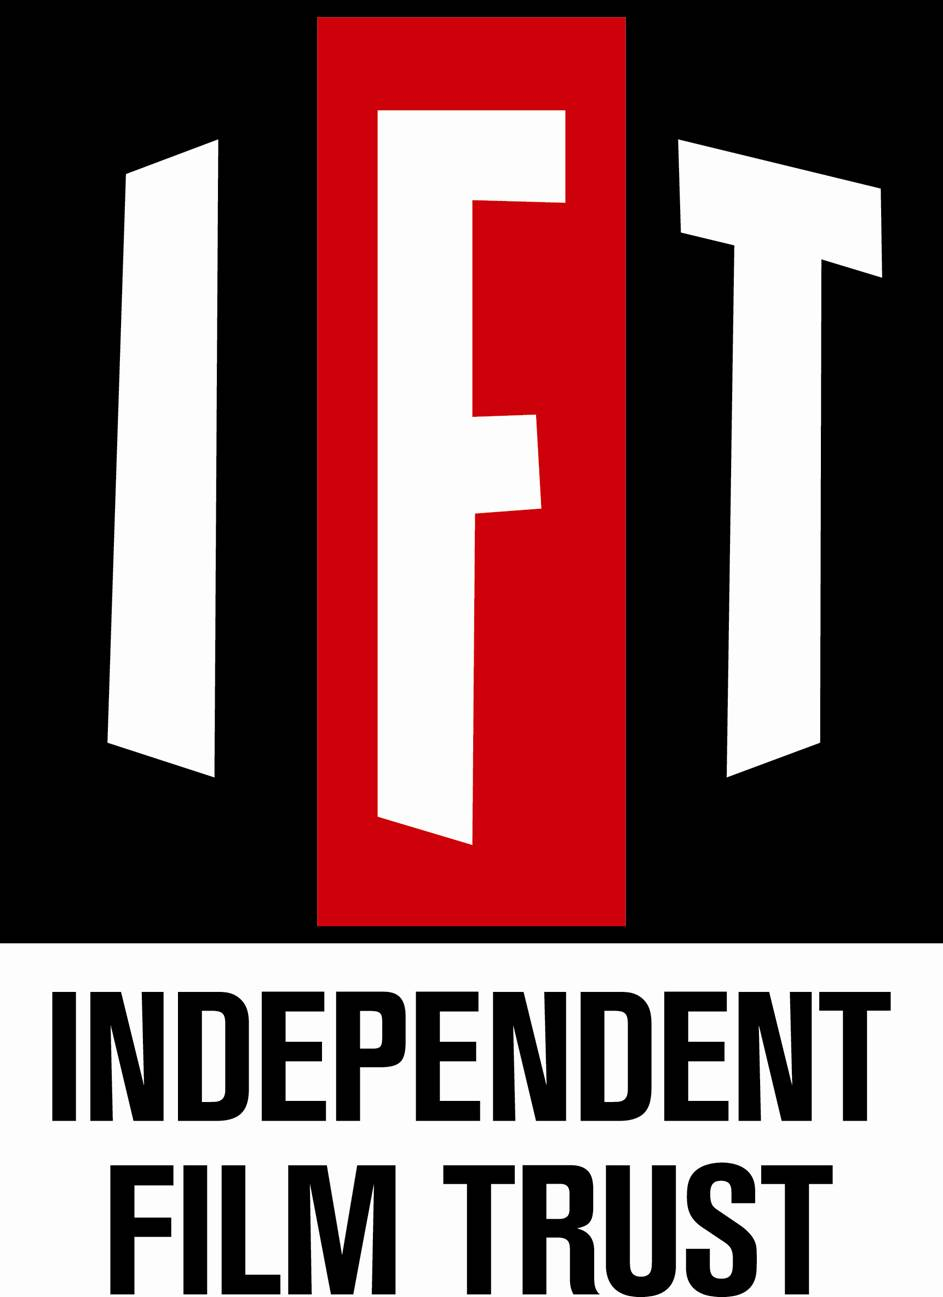 The Independent Film